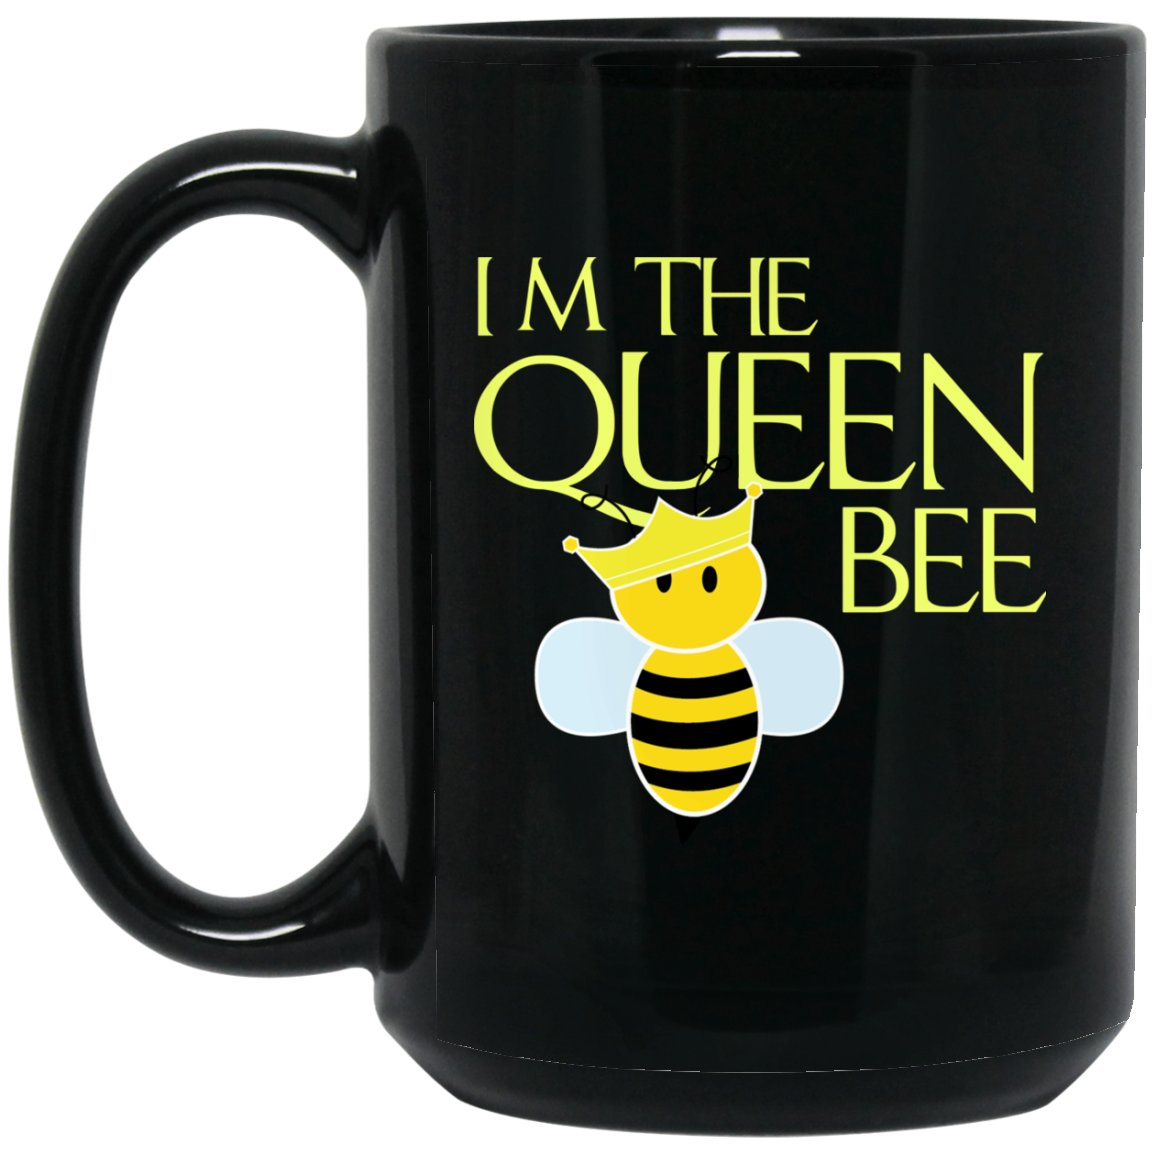 I'm the Queen Bee - Bee Lover Gift Large Black Mug